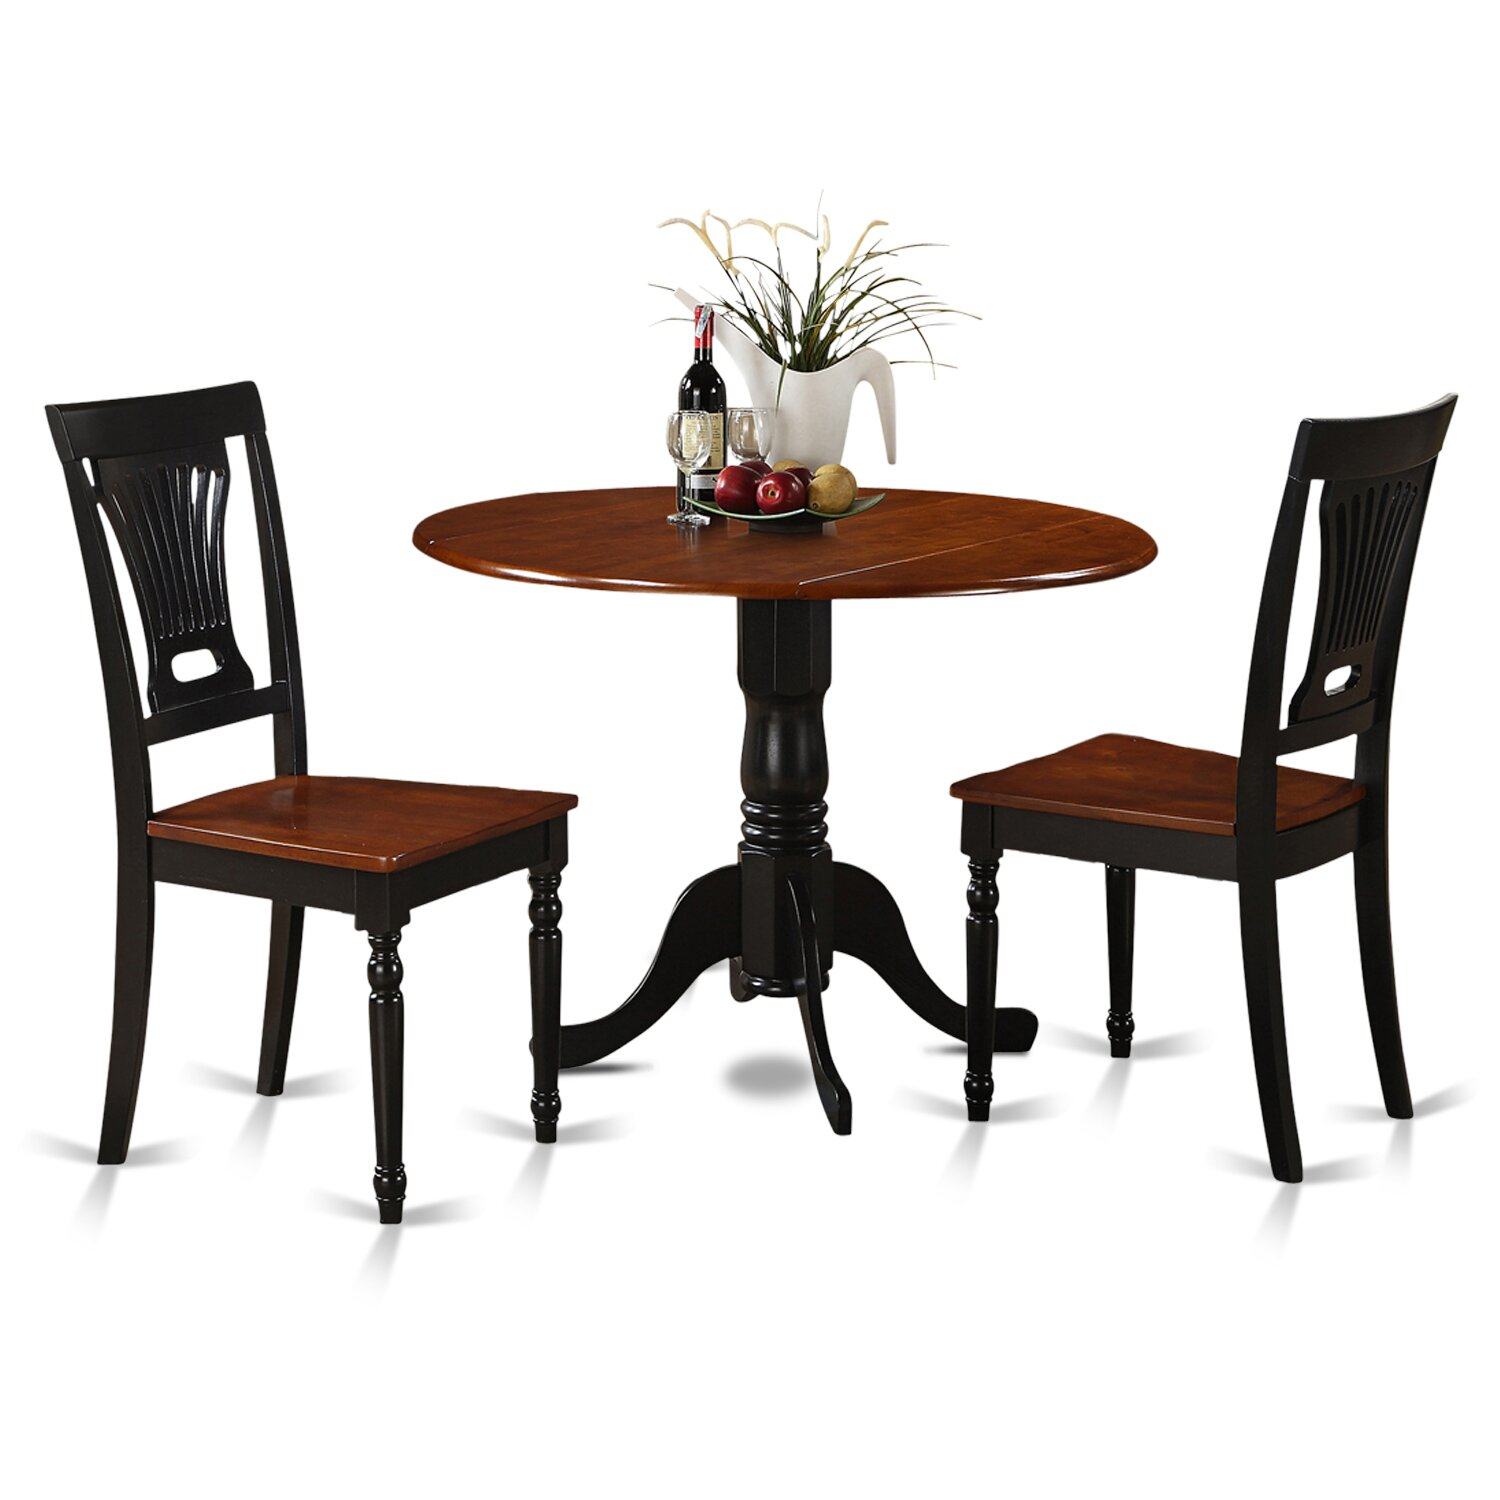 Wooden importers dublin 3 piece dining set reviews wayfair for Kitchen dining furniture